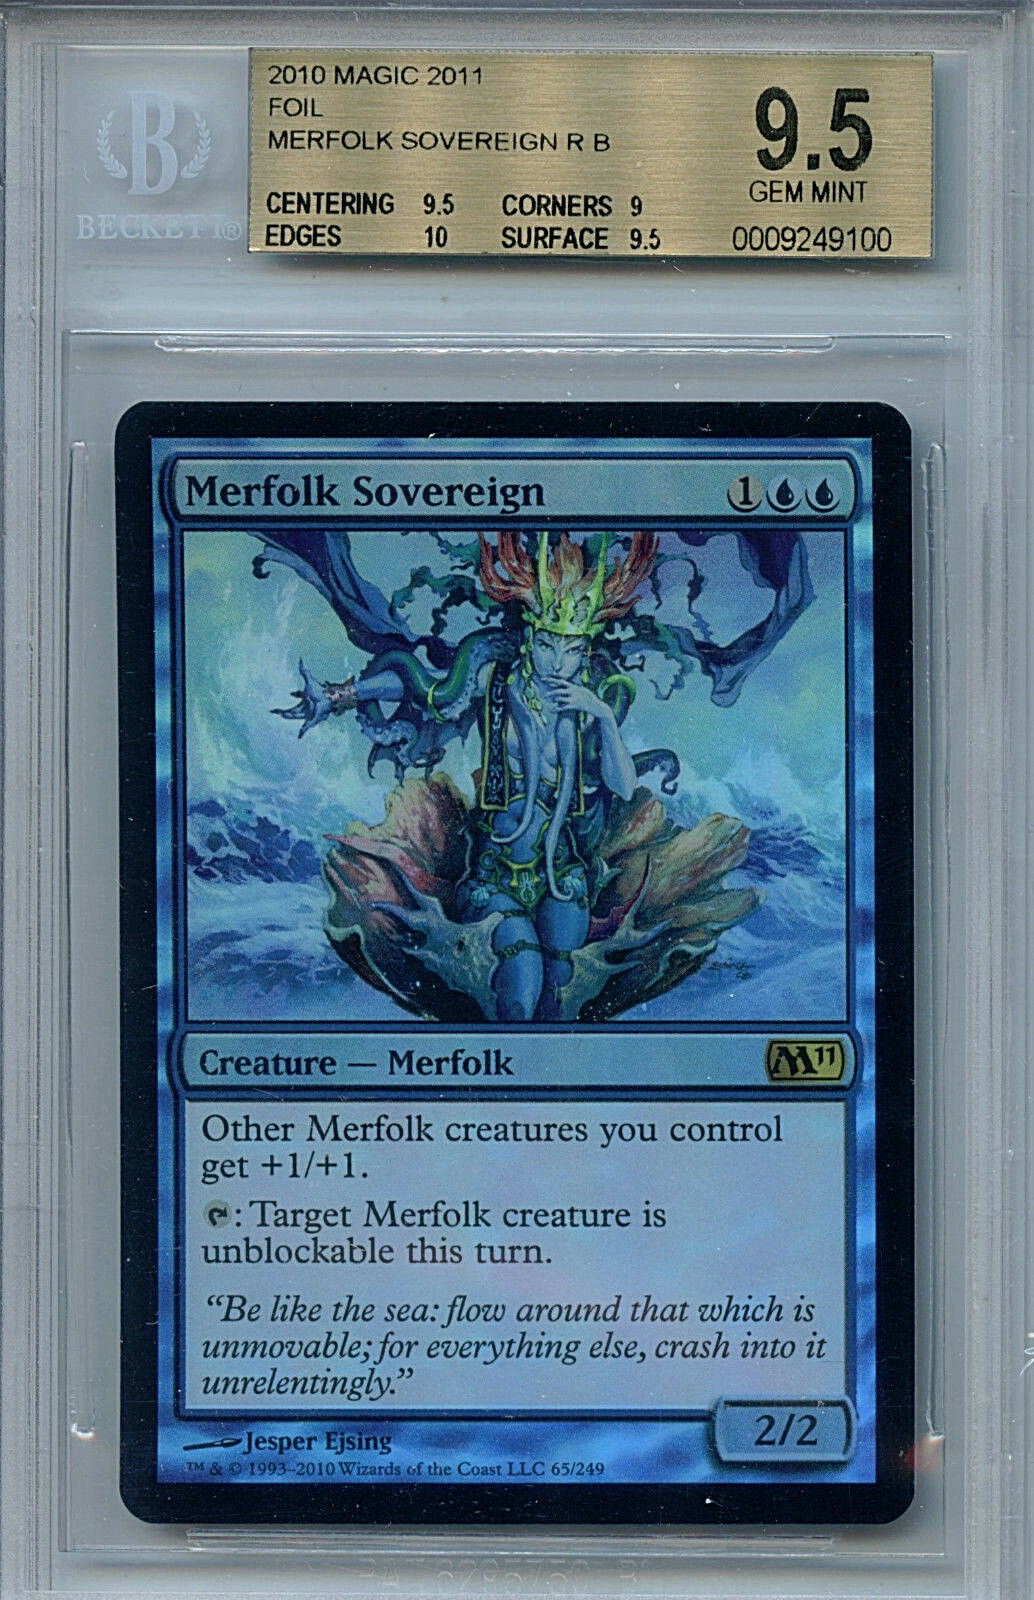 MTG Merfolk Sovereign BGS 9.5 Gem Mint Magic 2011 Foil Magic Card Amricons 9100